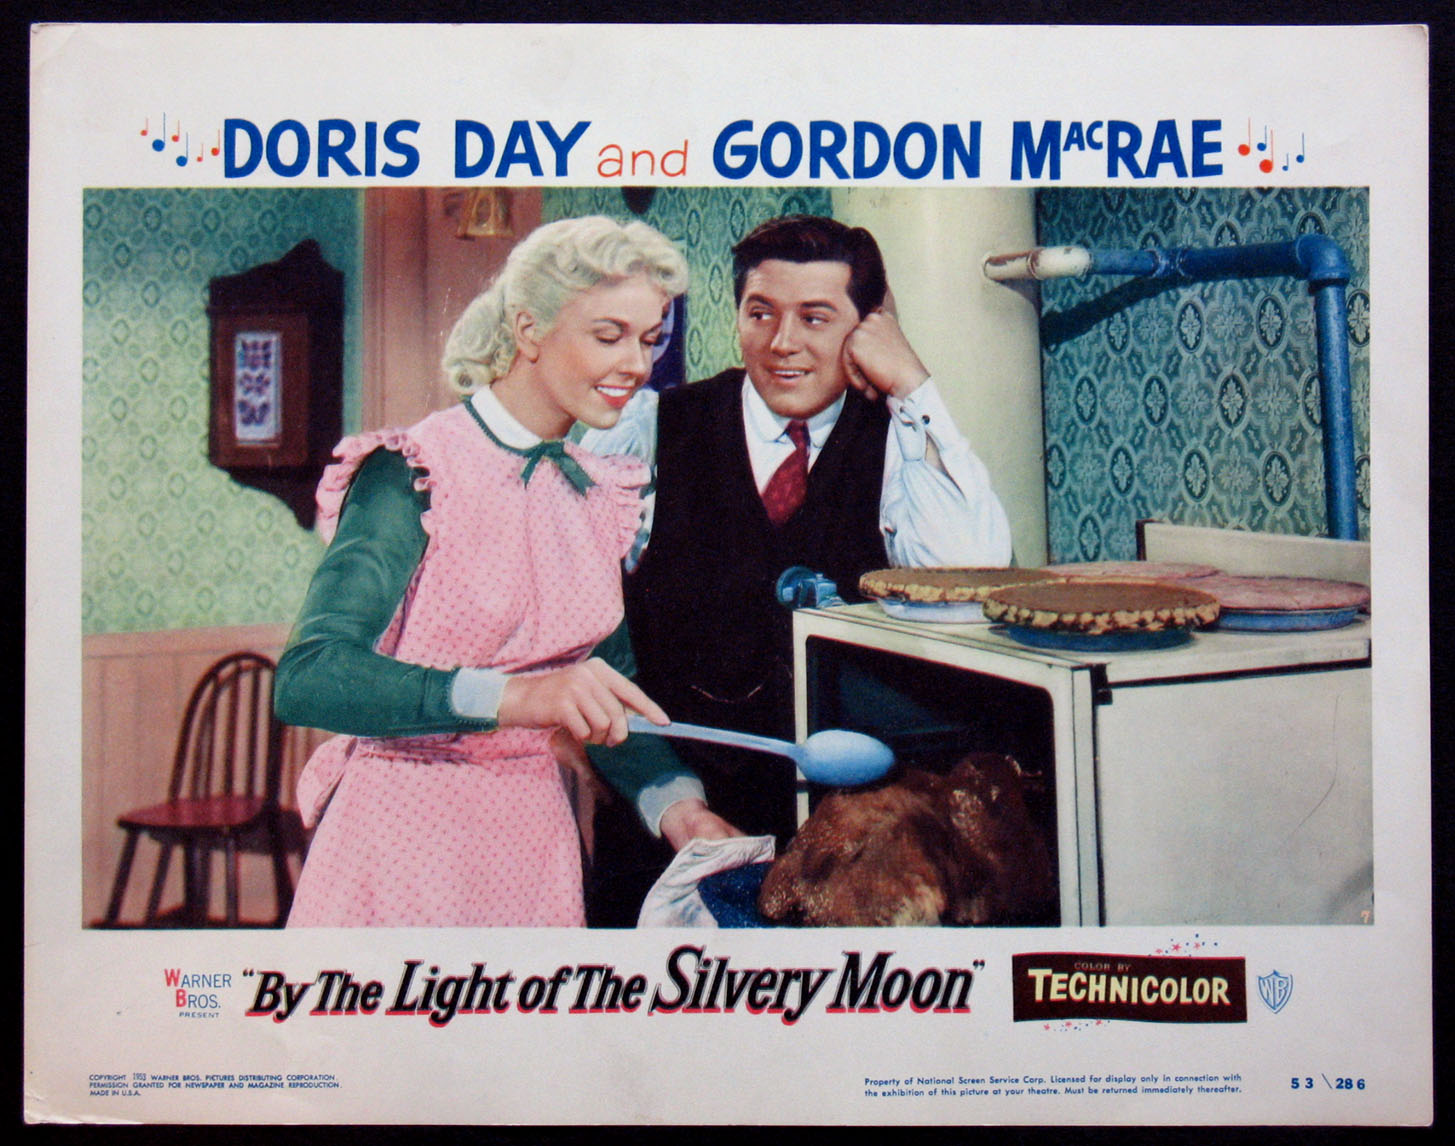 BY THE LIGHT OF THE SILVERY MOON @ FilmPosters.com